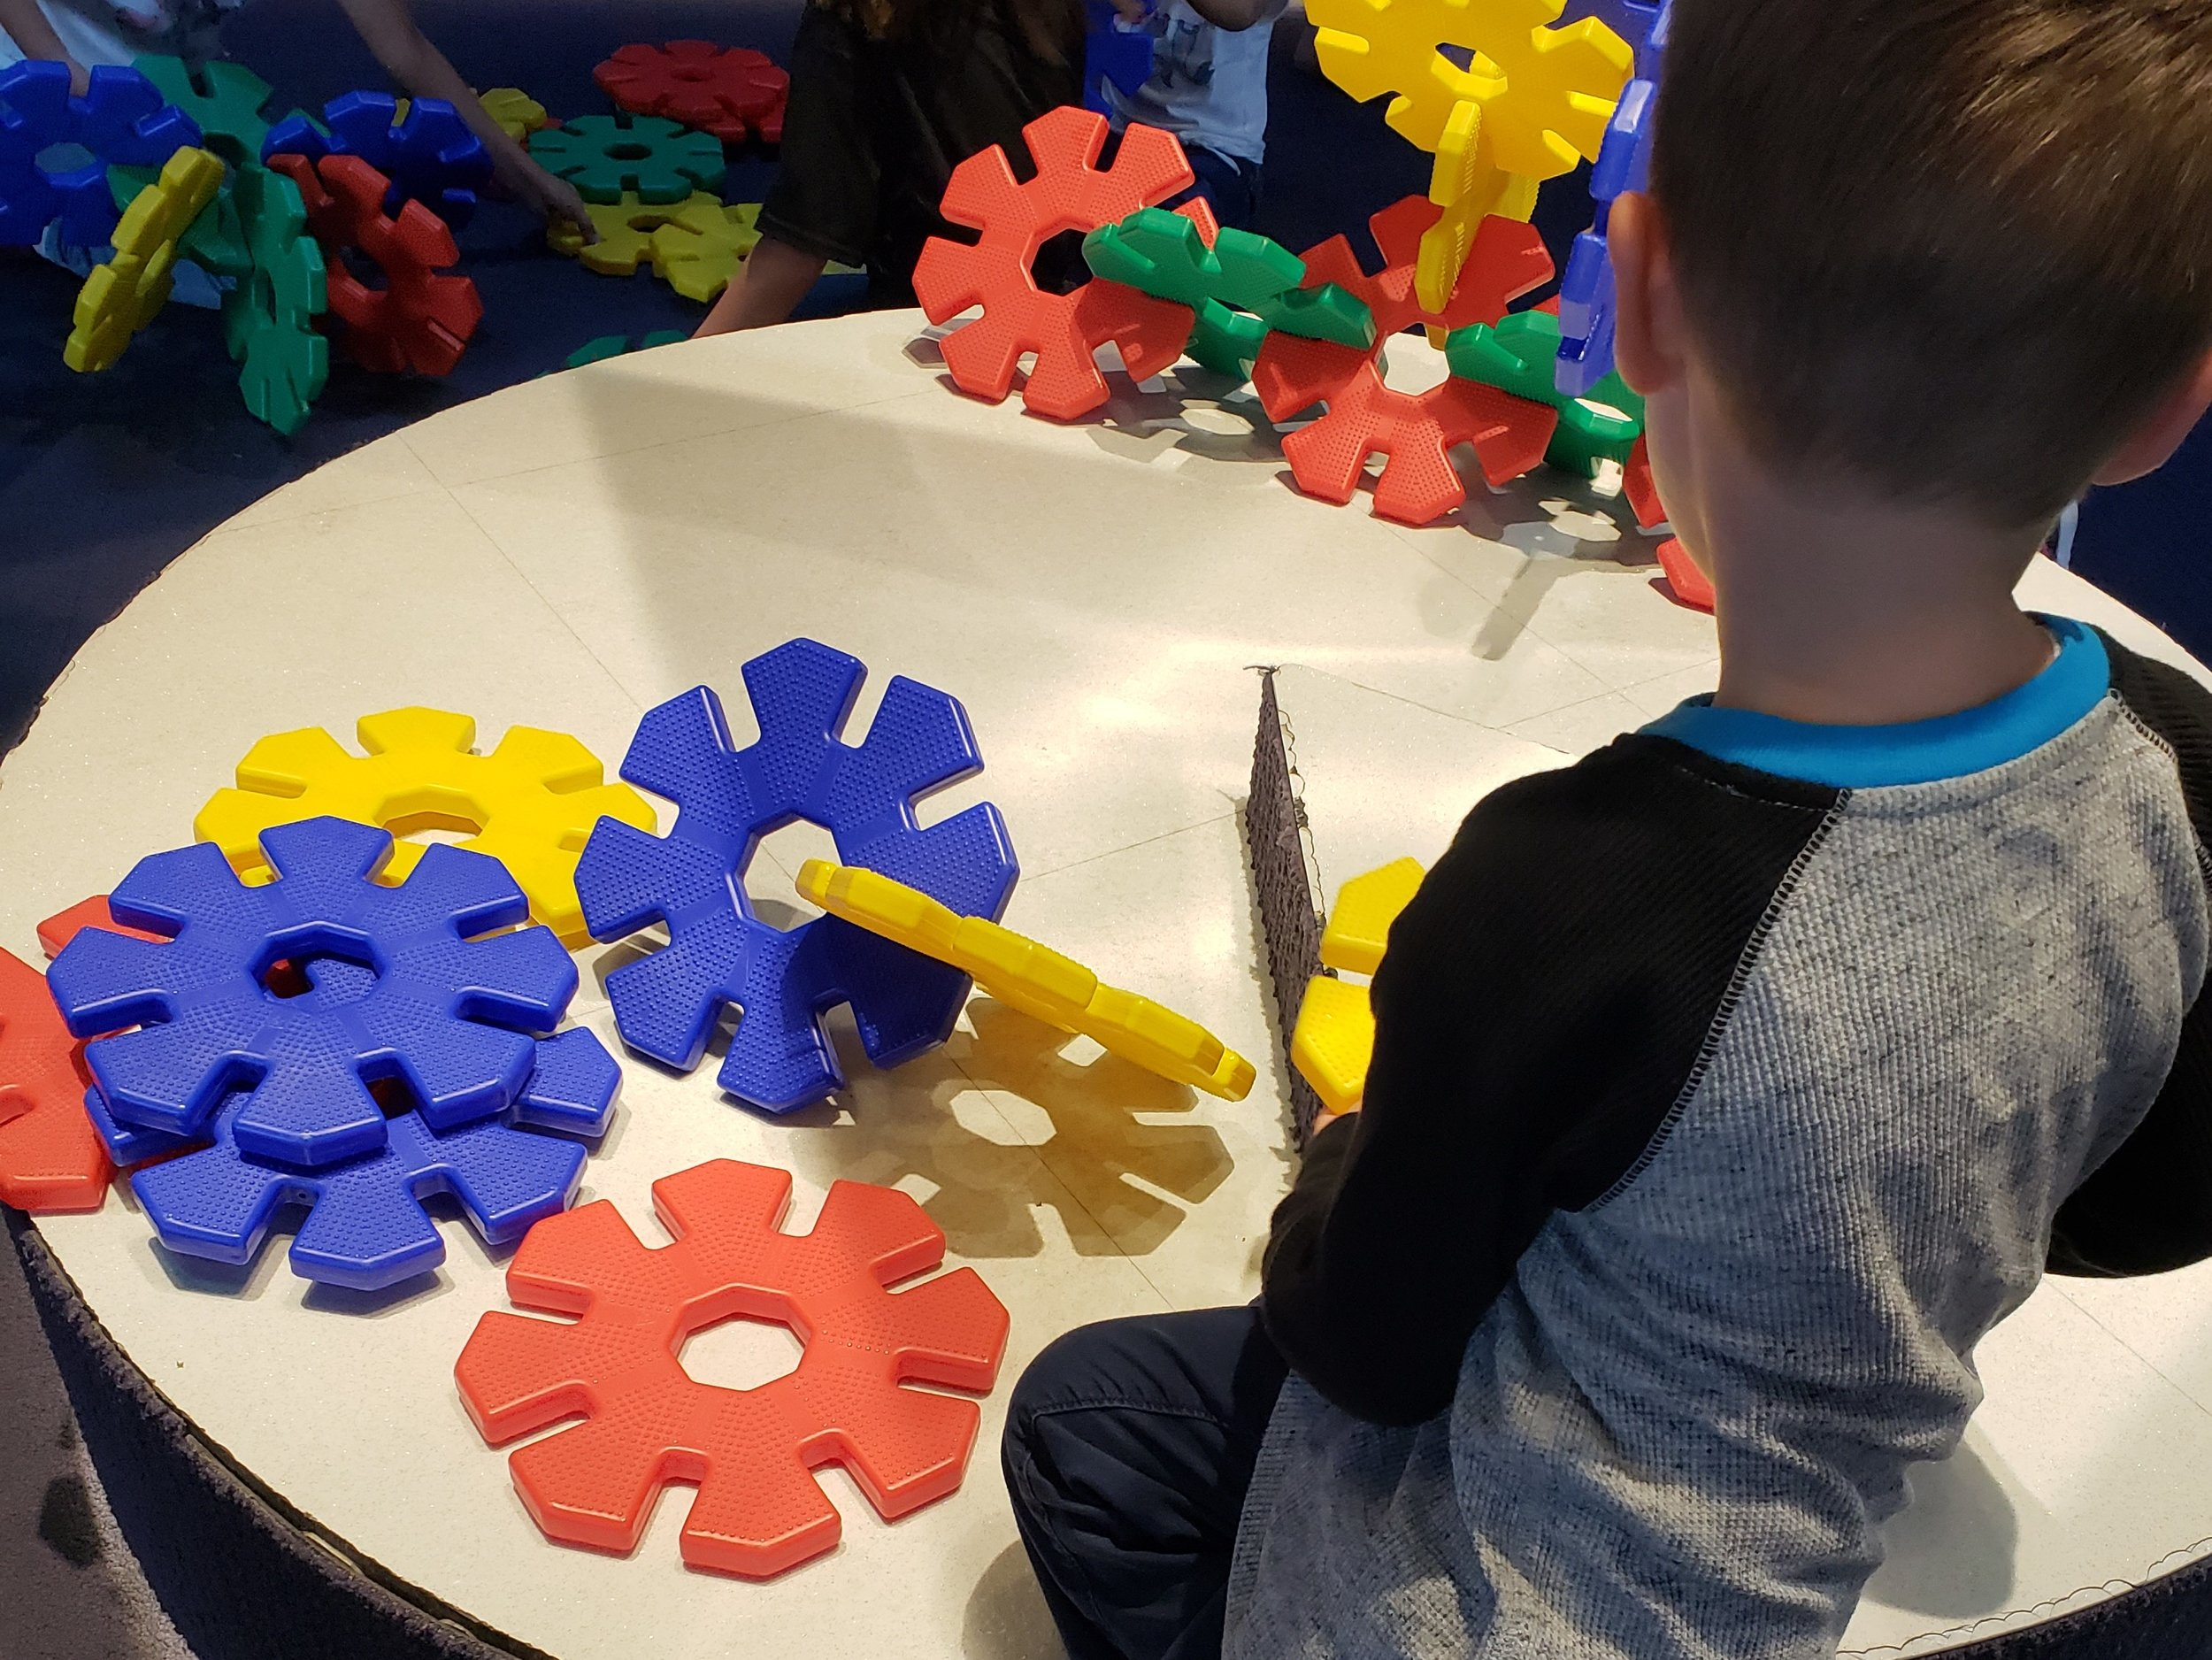 the doseum san antonio children's stem museum sowing seeds blog